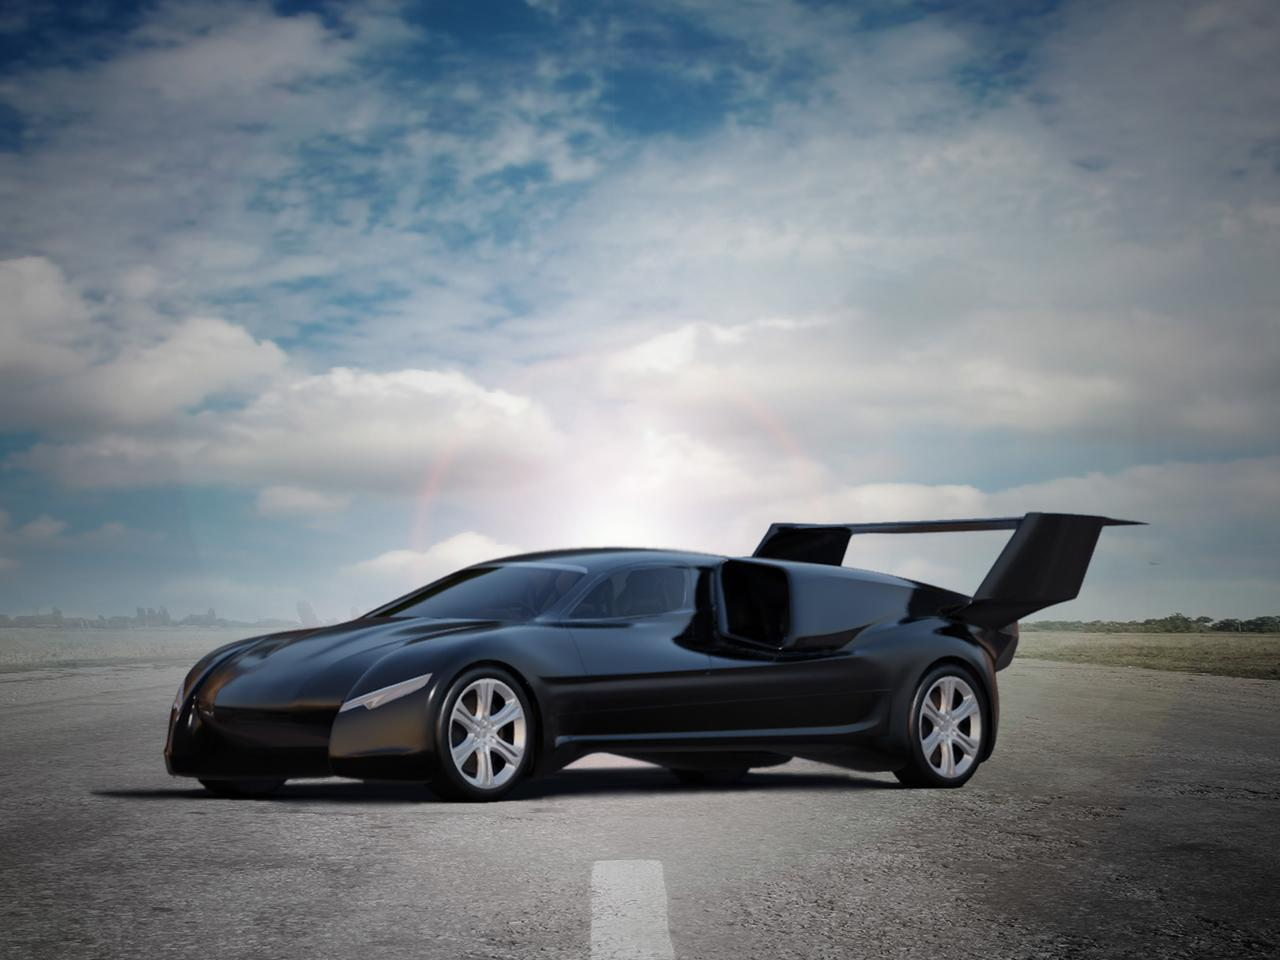 The Lanciare is a very long car at more than 24 feet with the rear stabilizer up - not quite limo long, but close